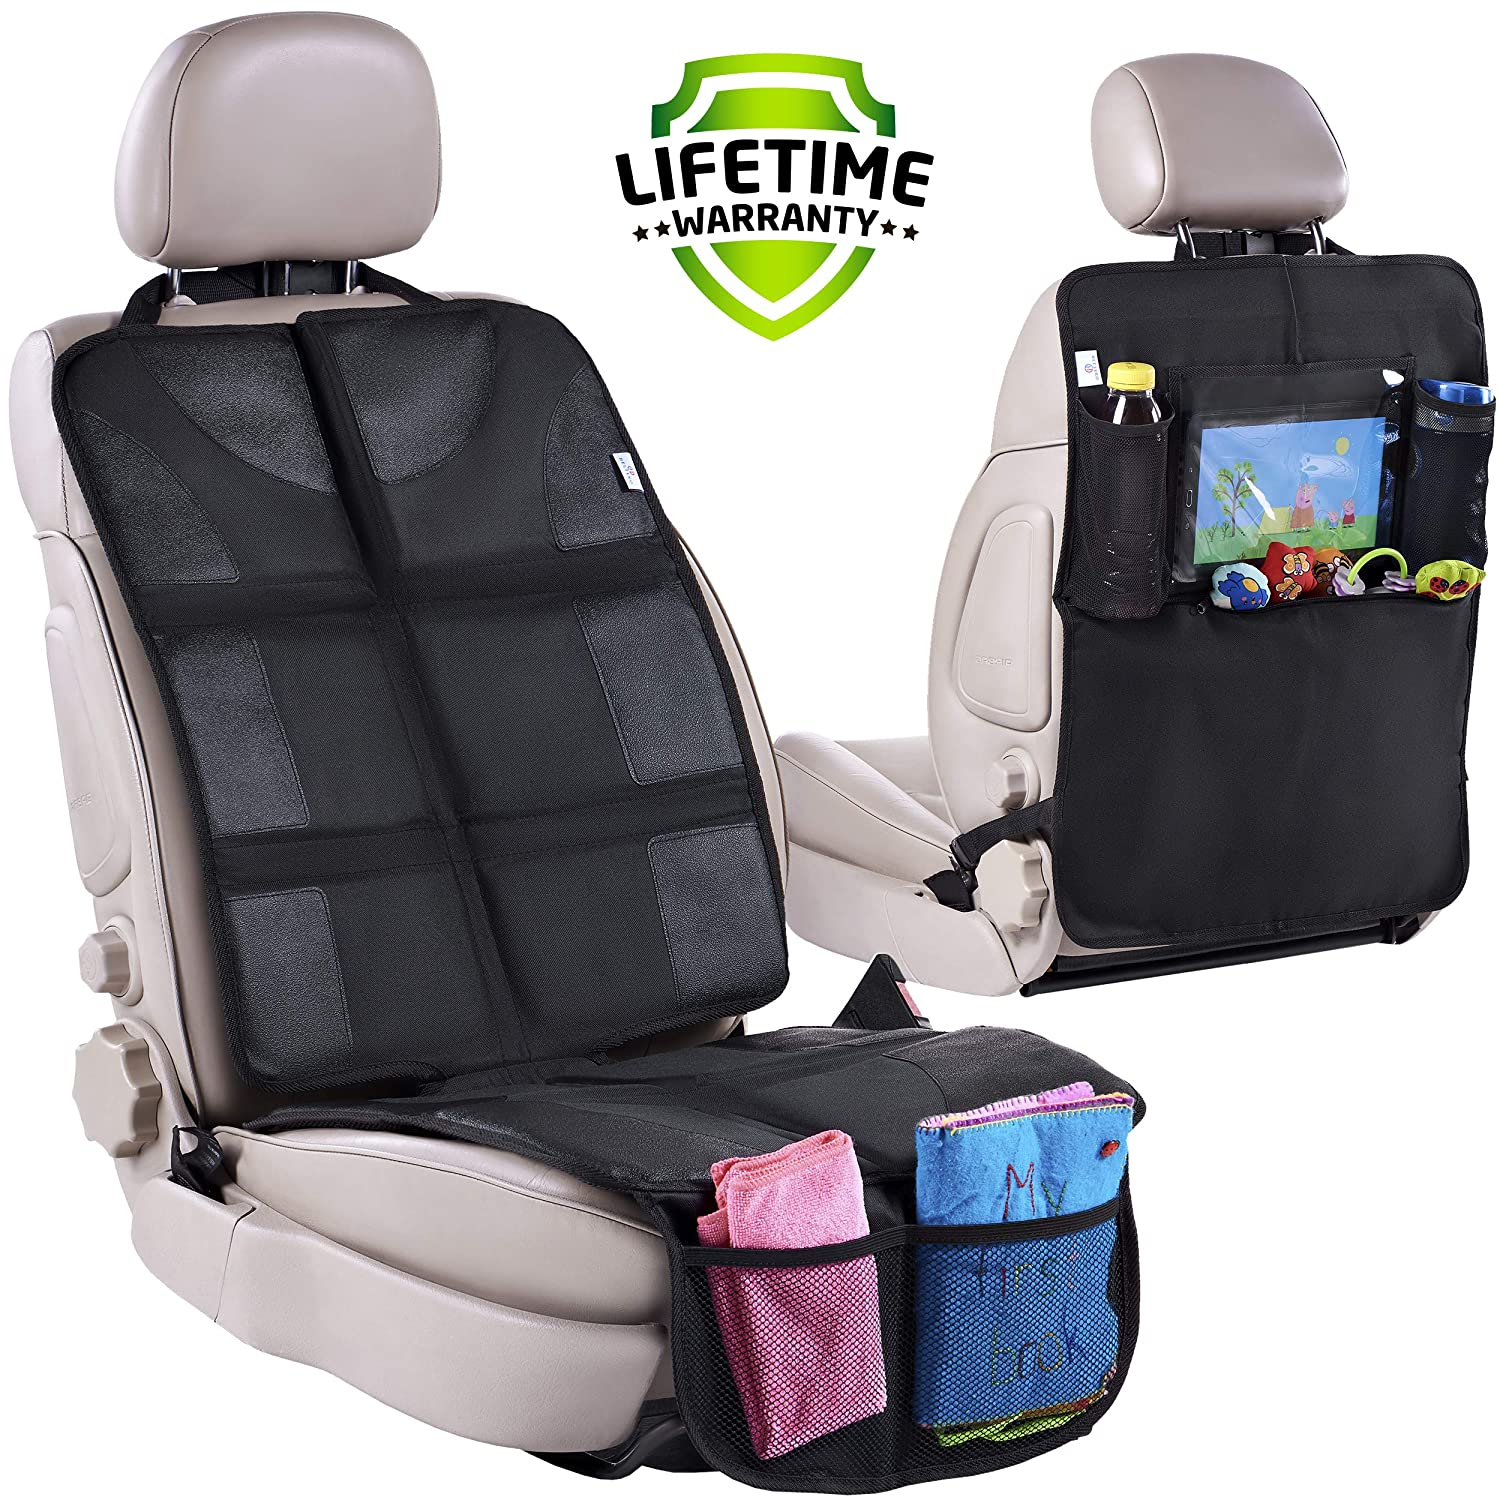 Car Seat Protector & Rear Seat Organizer for Kids - Waterproof & Stain Resistant Protective Backseat Kick Mat W/Storage Pockets & Tablet Holder - Baby Travel Kickmat & Front/Back Seat Cover Set Helteko